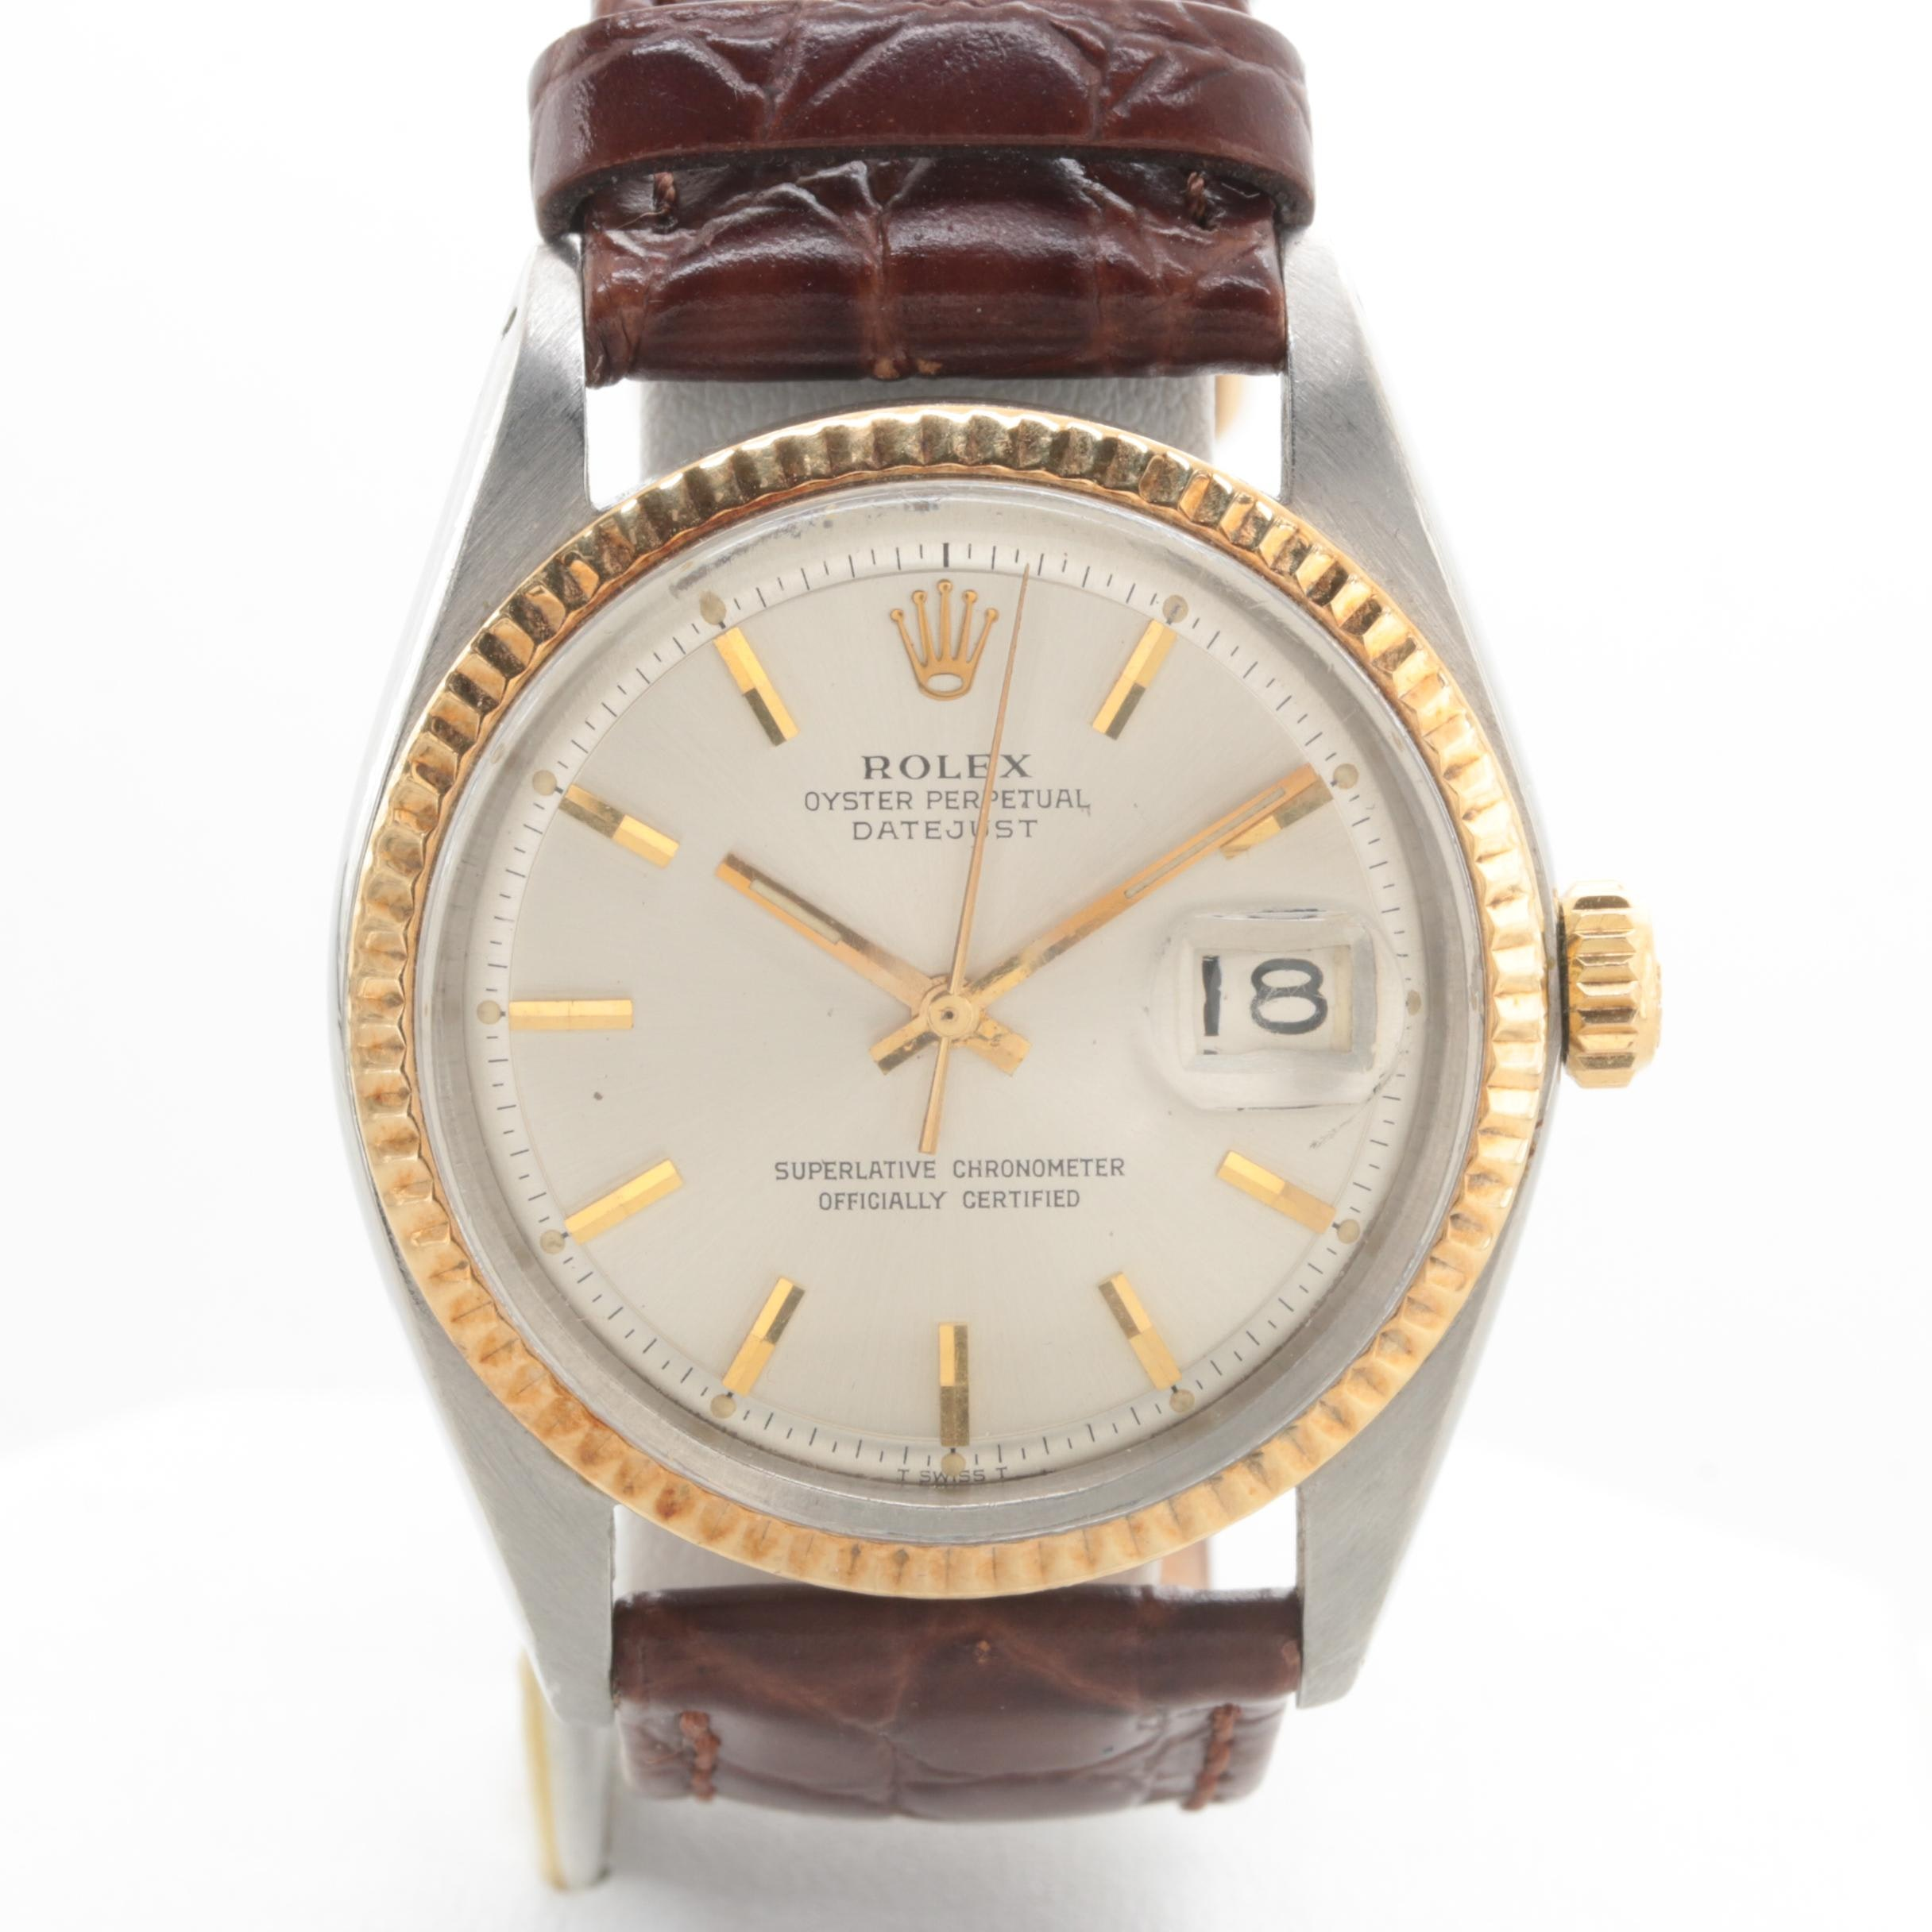 Rolex Datejust Oyster Perpetual Stainless Steel and 14K Yellow Gold Wristwatch